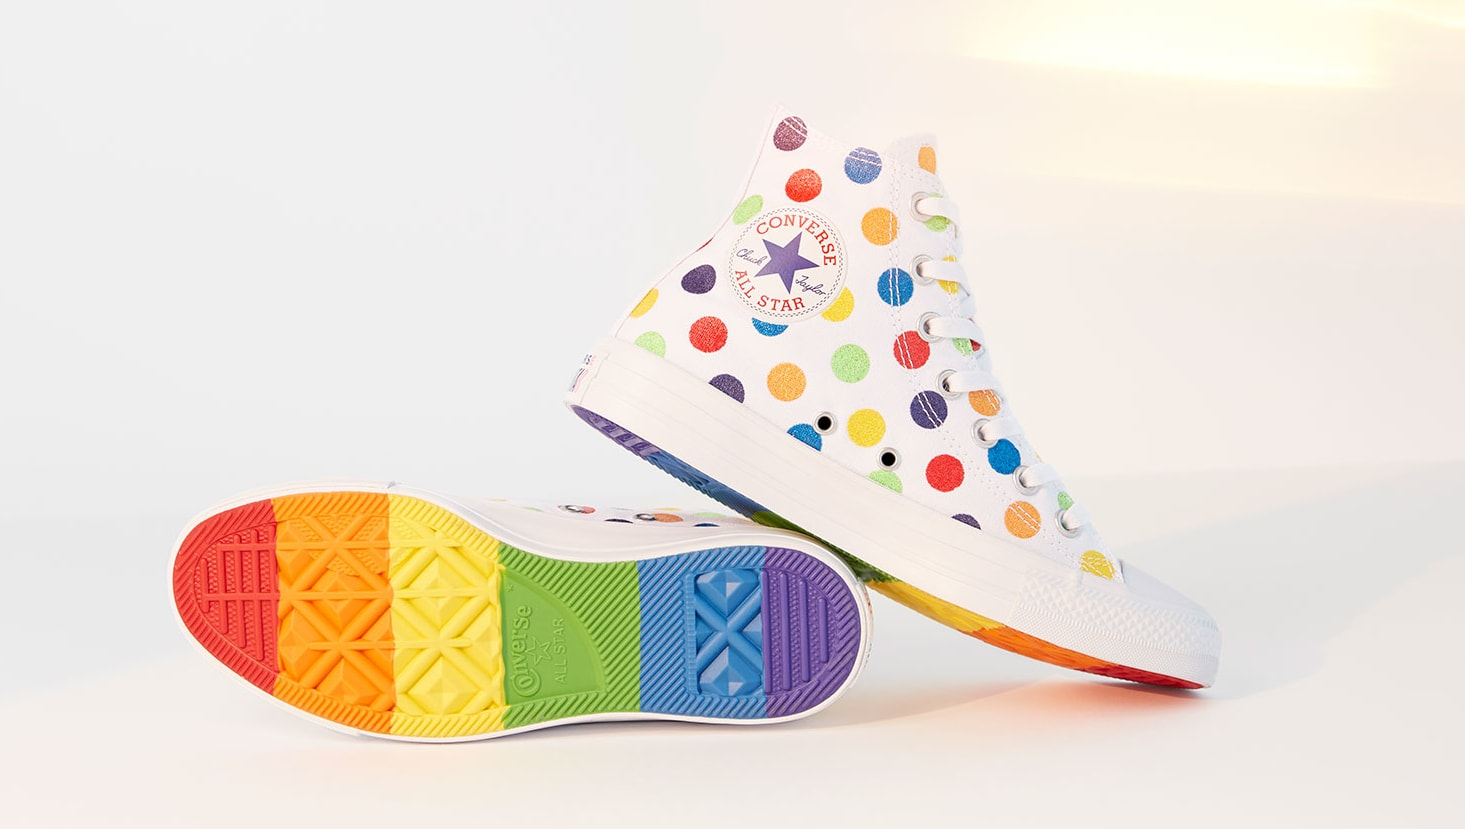 Miley Cyrus x Converse Chuck Taylor All-Star High 'Pride'